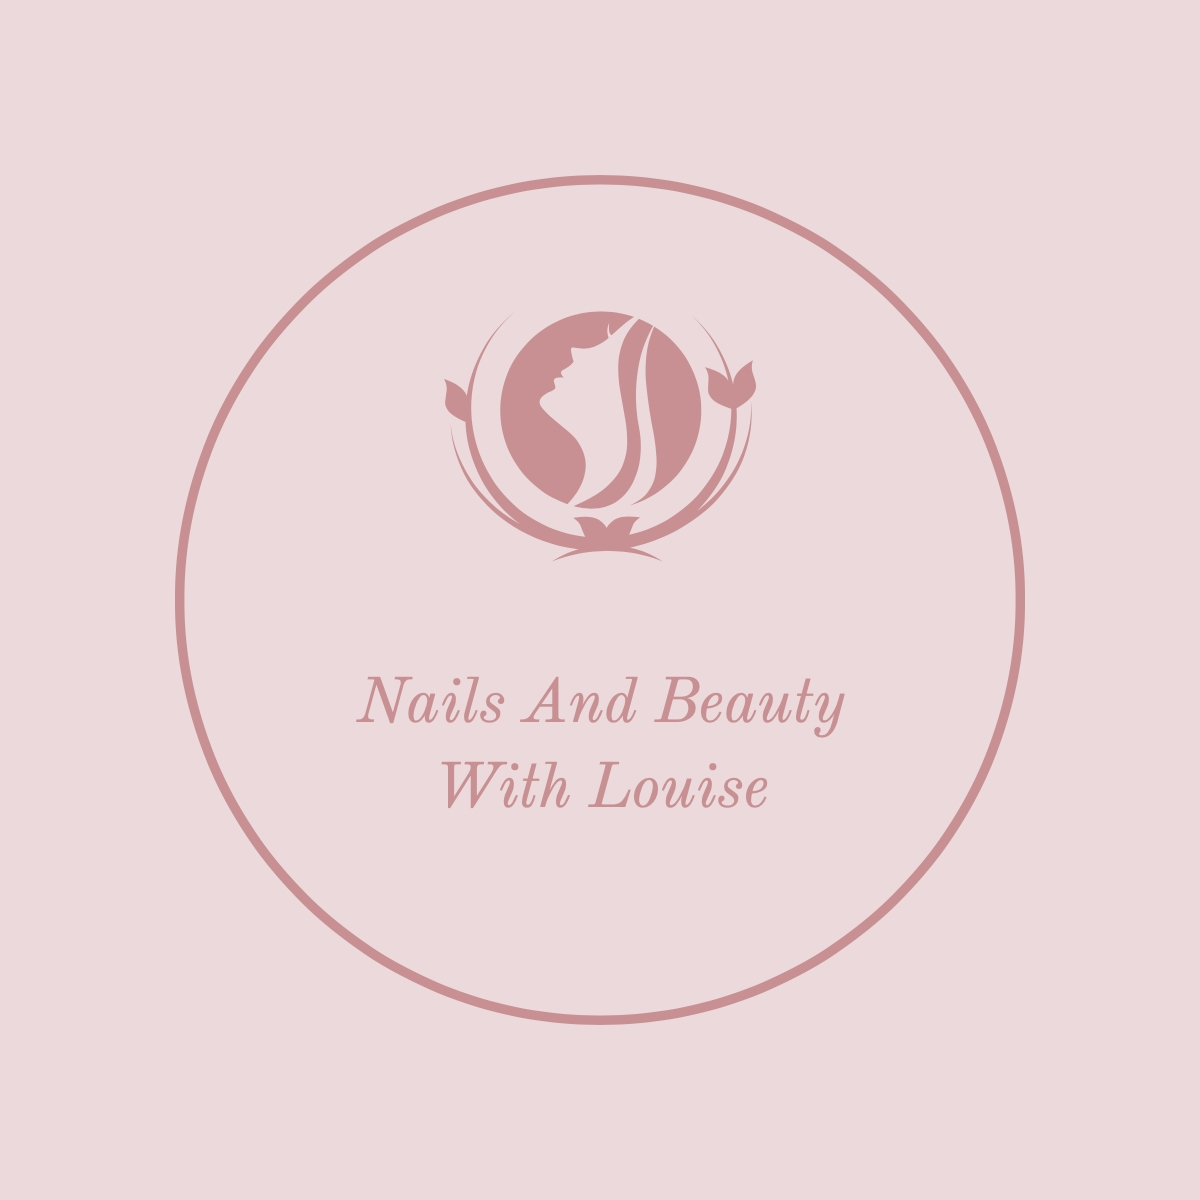 Nails & Beauty with Louise